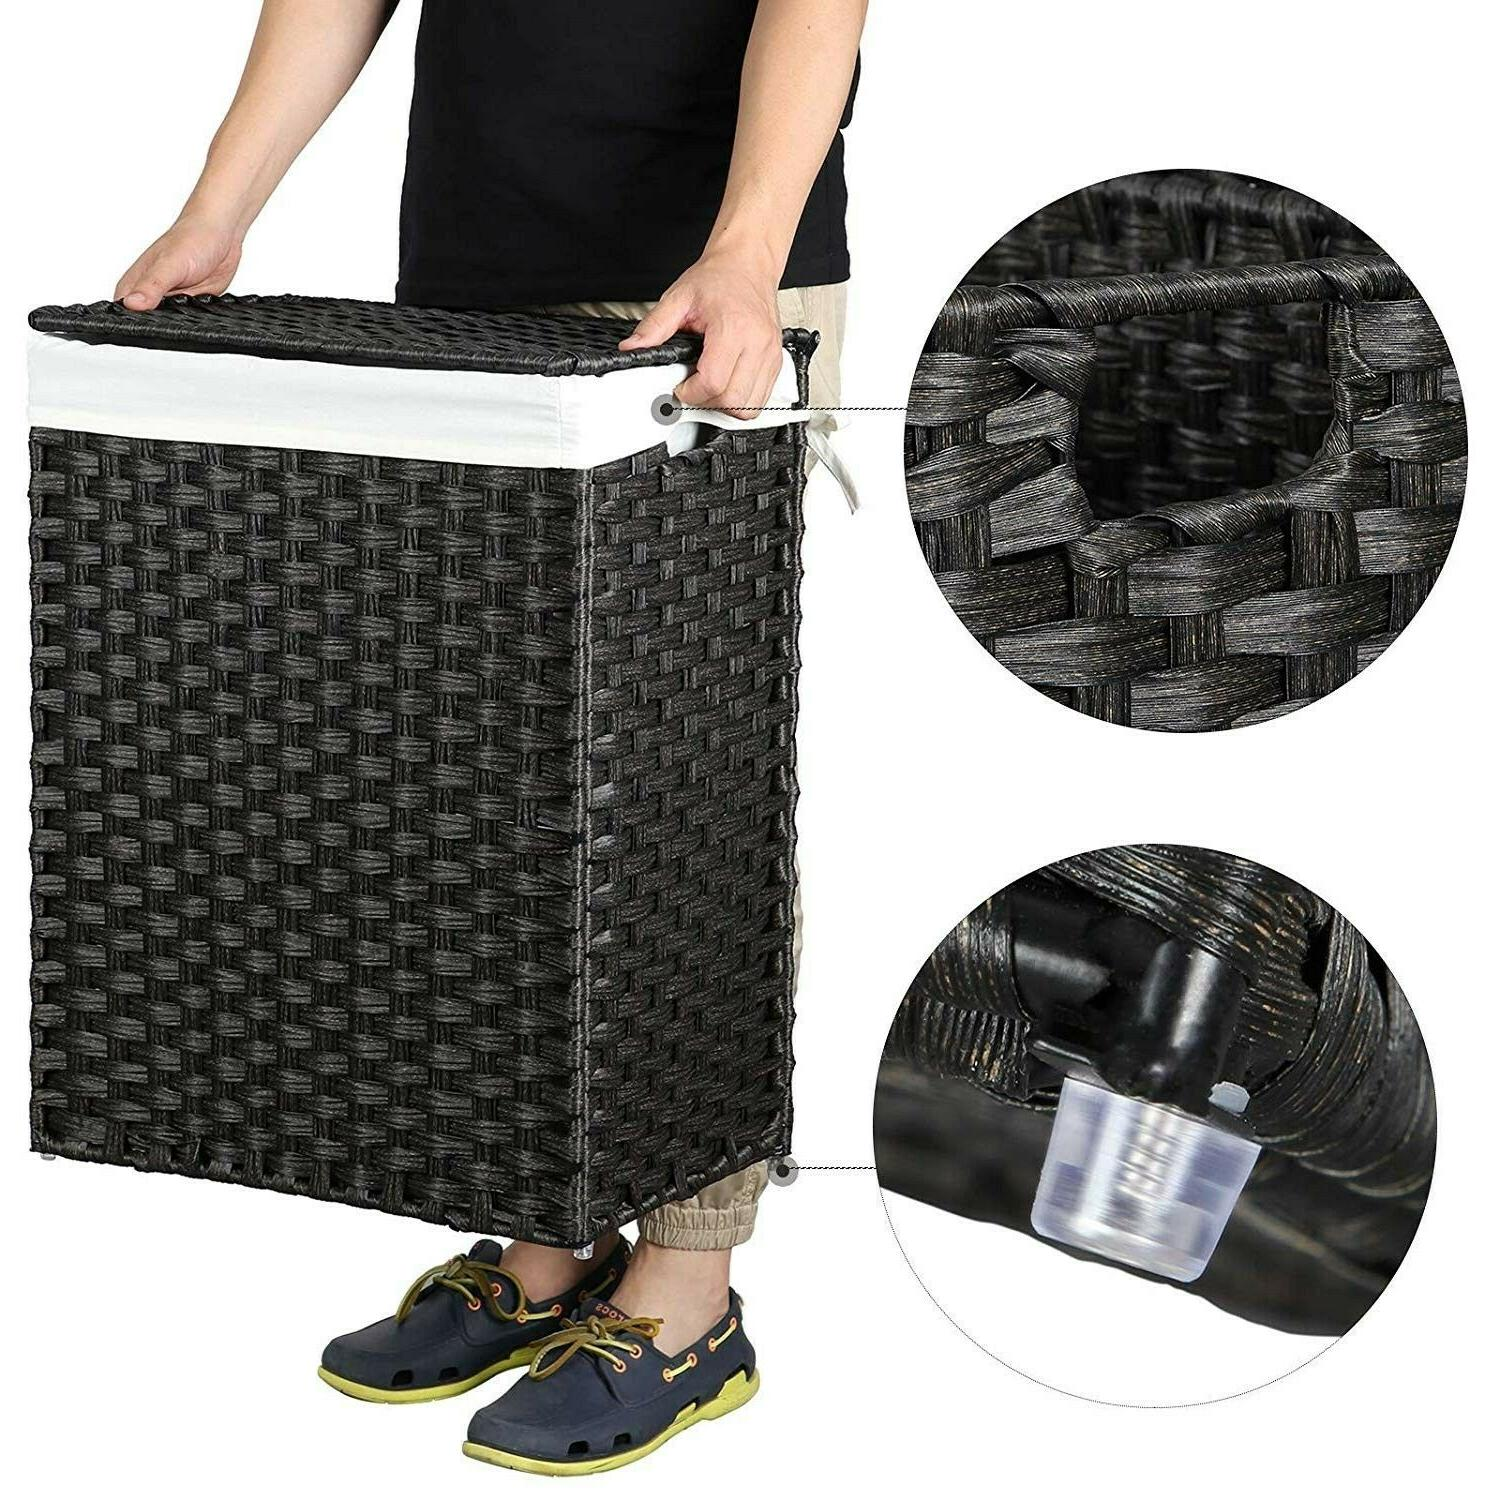 Laundry Basket Foldable Hamper Clothes With Liner